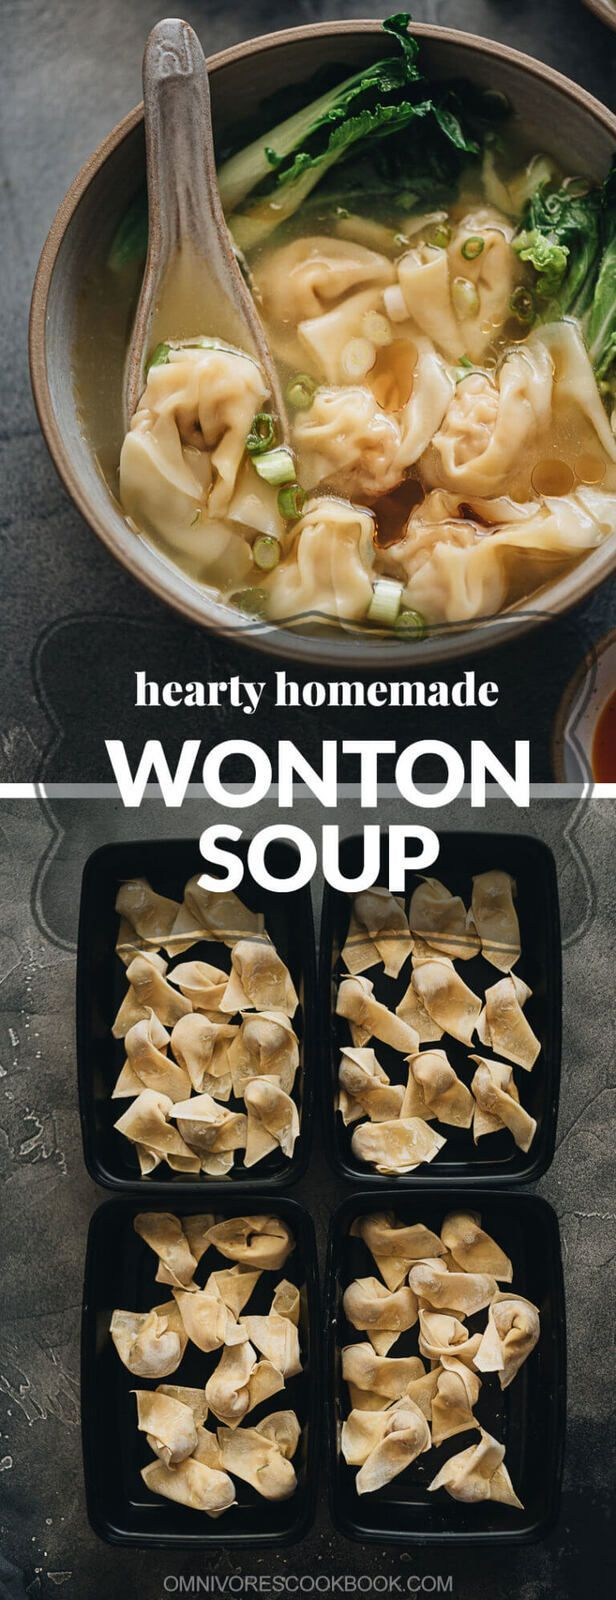 Mar 18, 2020 – Wonton soup – easy pork and shrimp wontons served in a hearty chicken soup. An authentic Chinese street v…